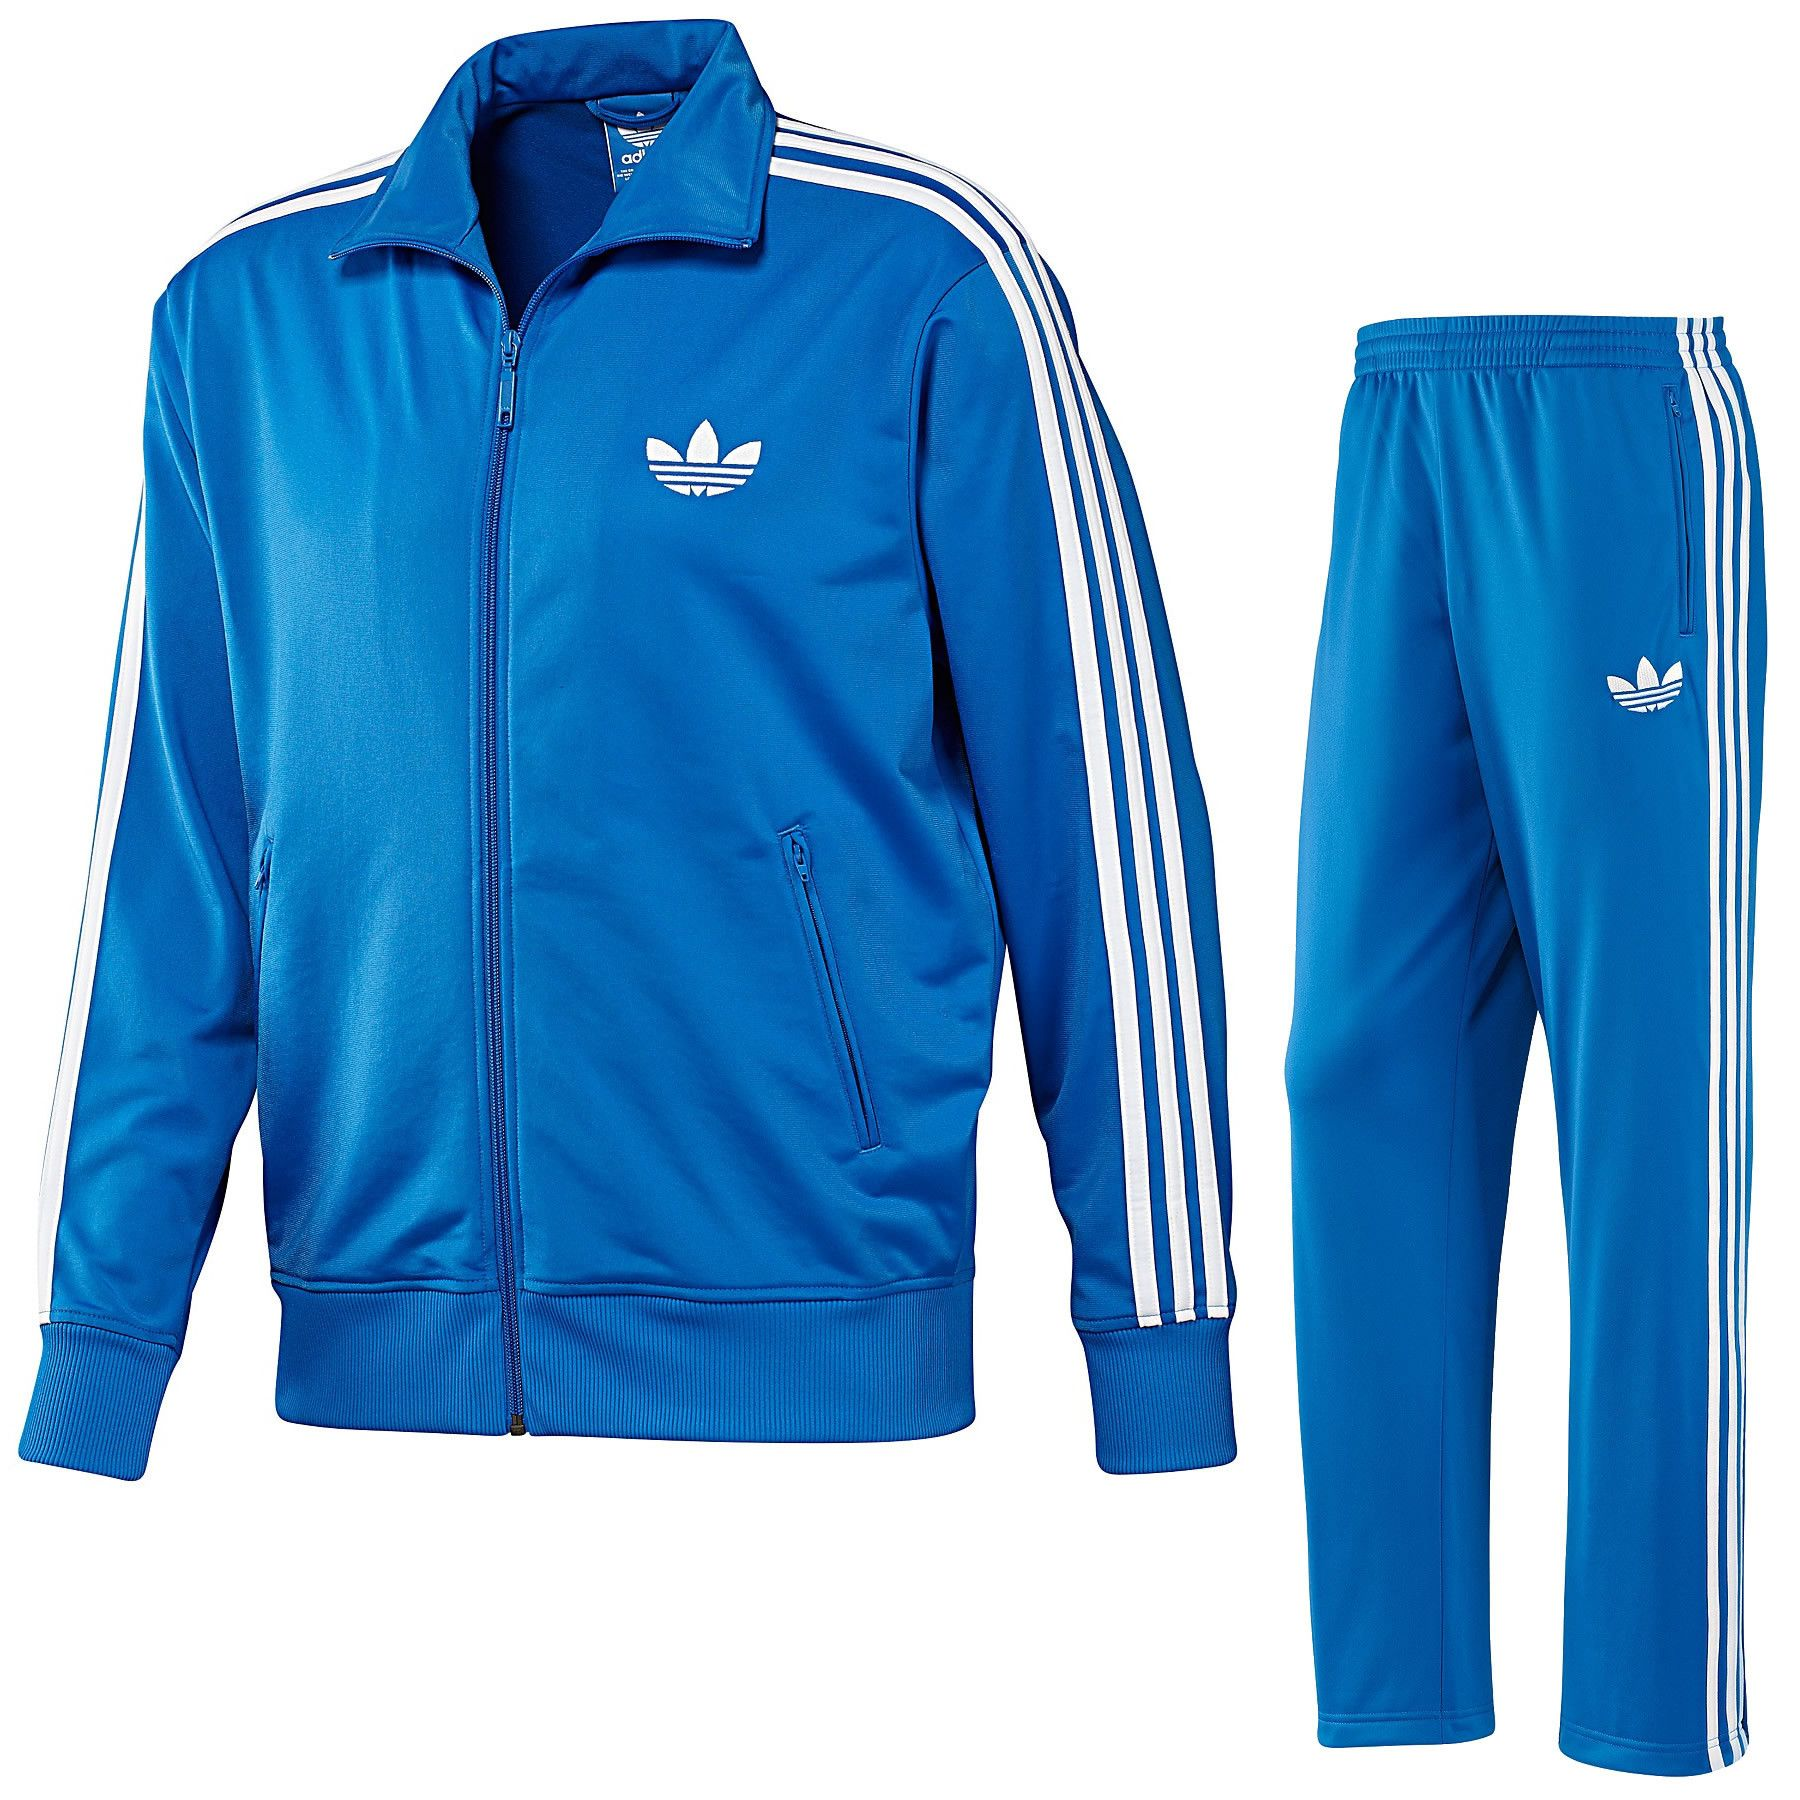 Search adidas Google Google blue tracksuit adidas tracksuit Google blue adidas tracksuit Search blue wTPBq0